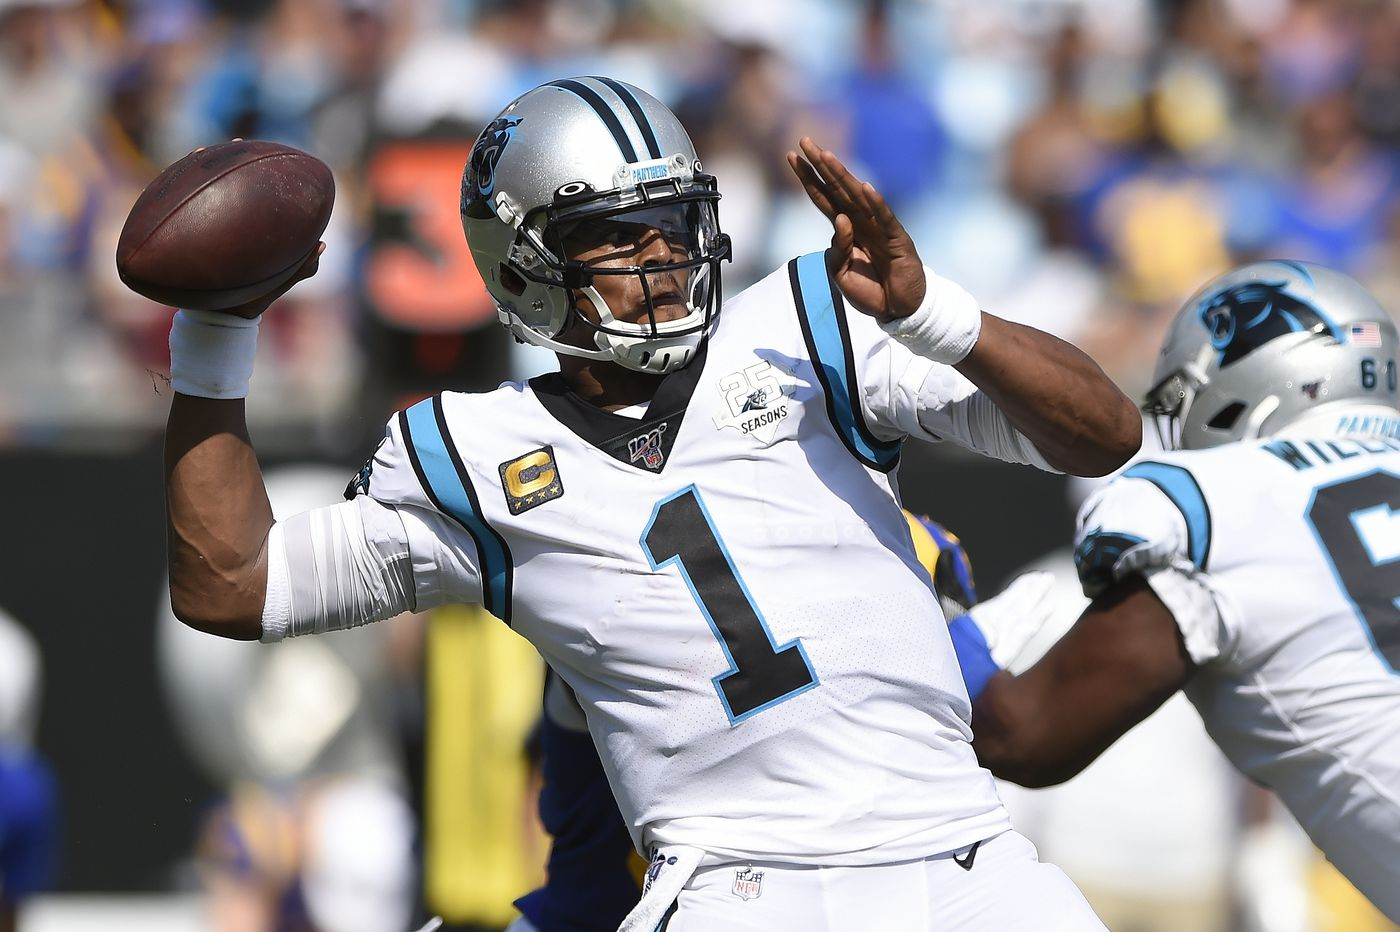 Cam Newton and the Patriots dynasty, a Netflix series on Colin Kaepernick, and other sports news